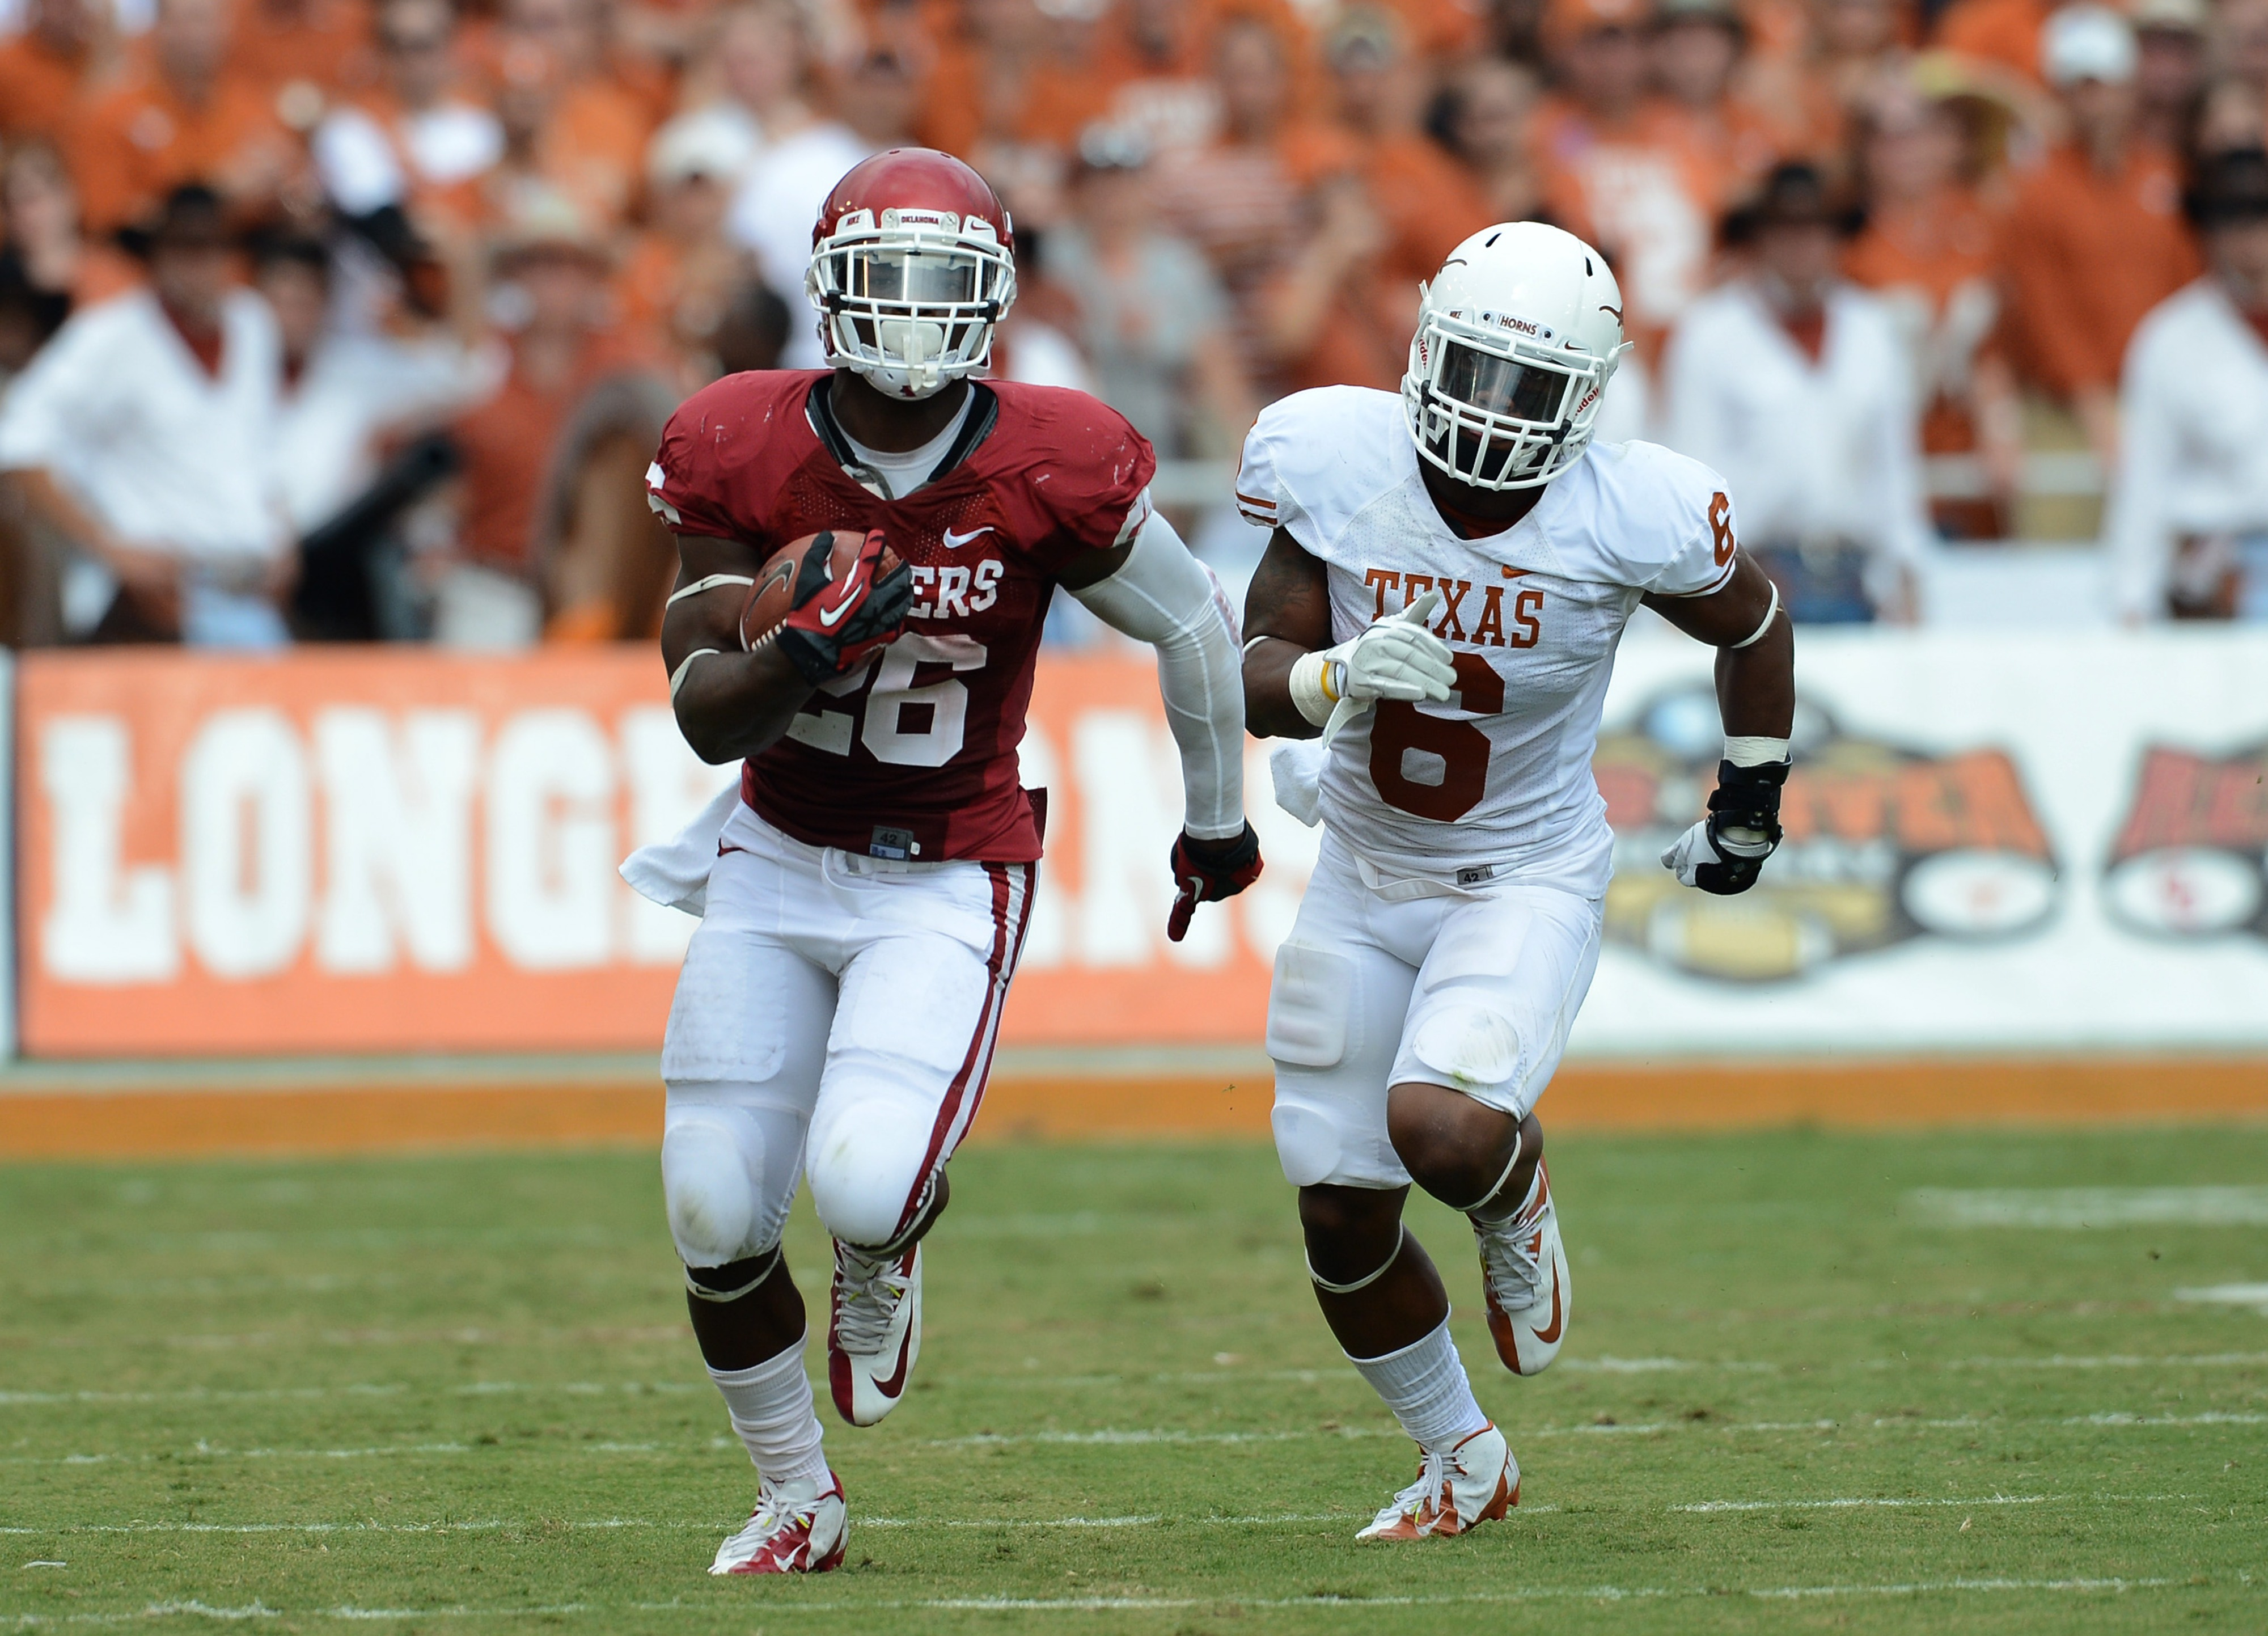 2013 Big 12 football team preview countdown by Bill Connelly